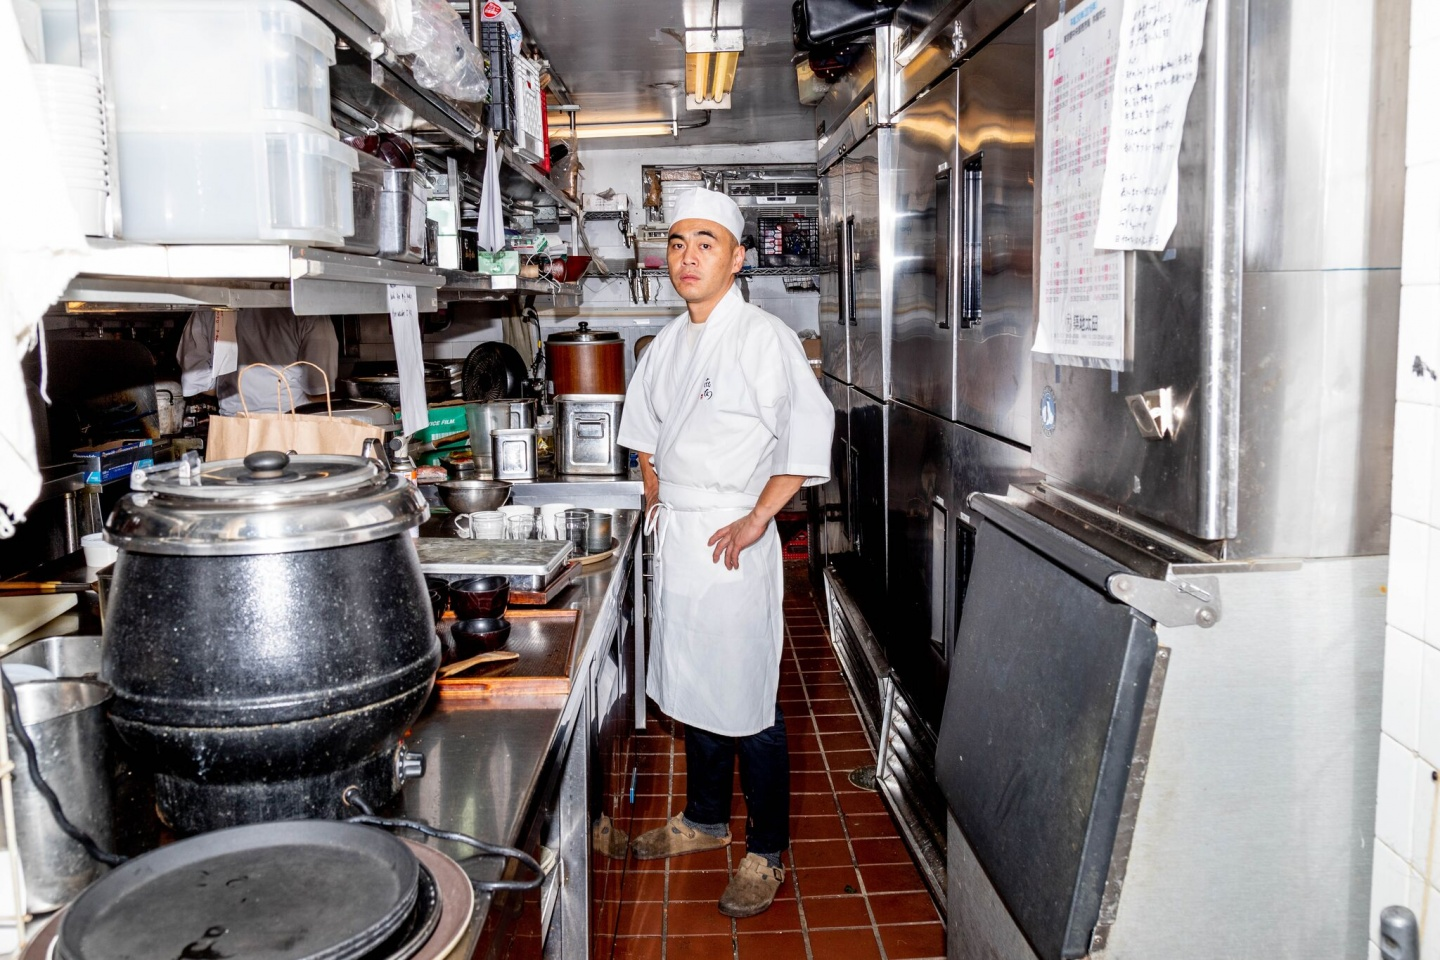 Chef in New york city kitchen